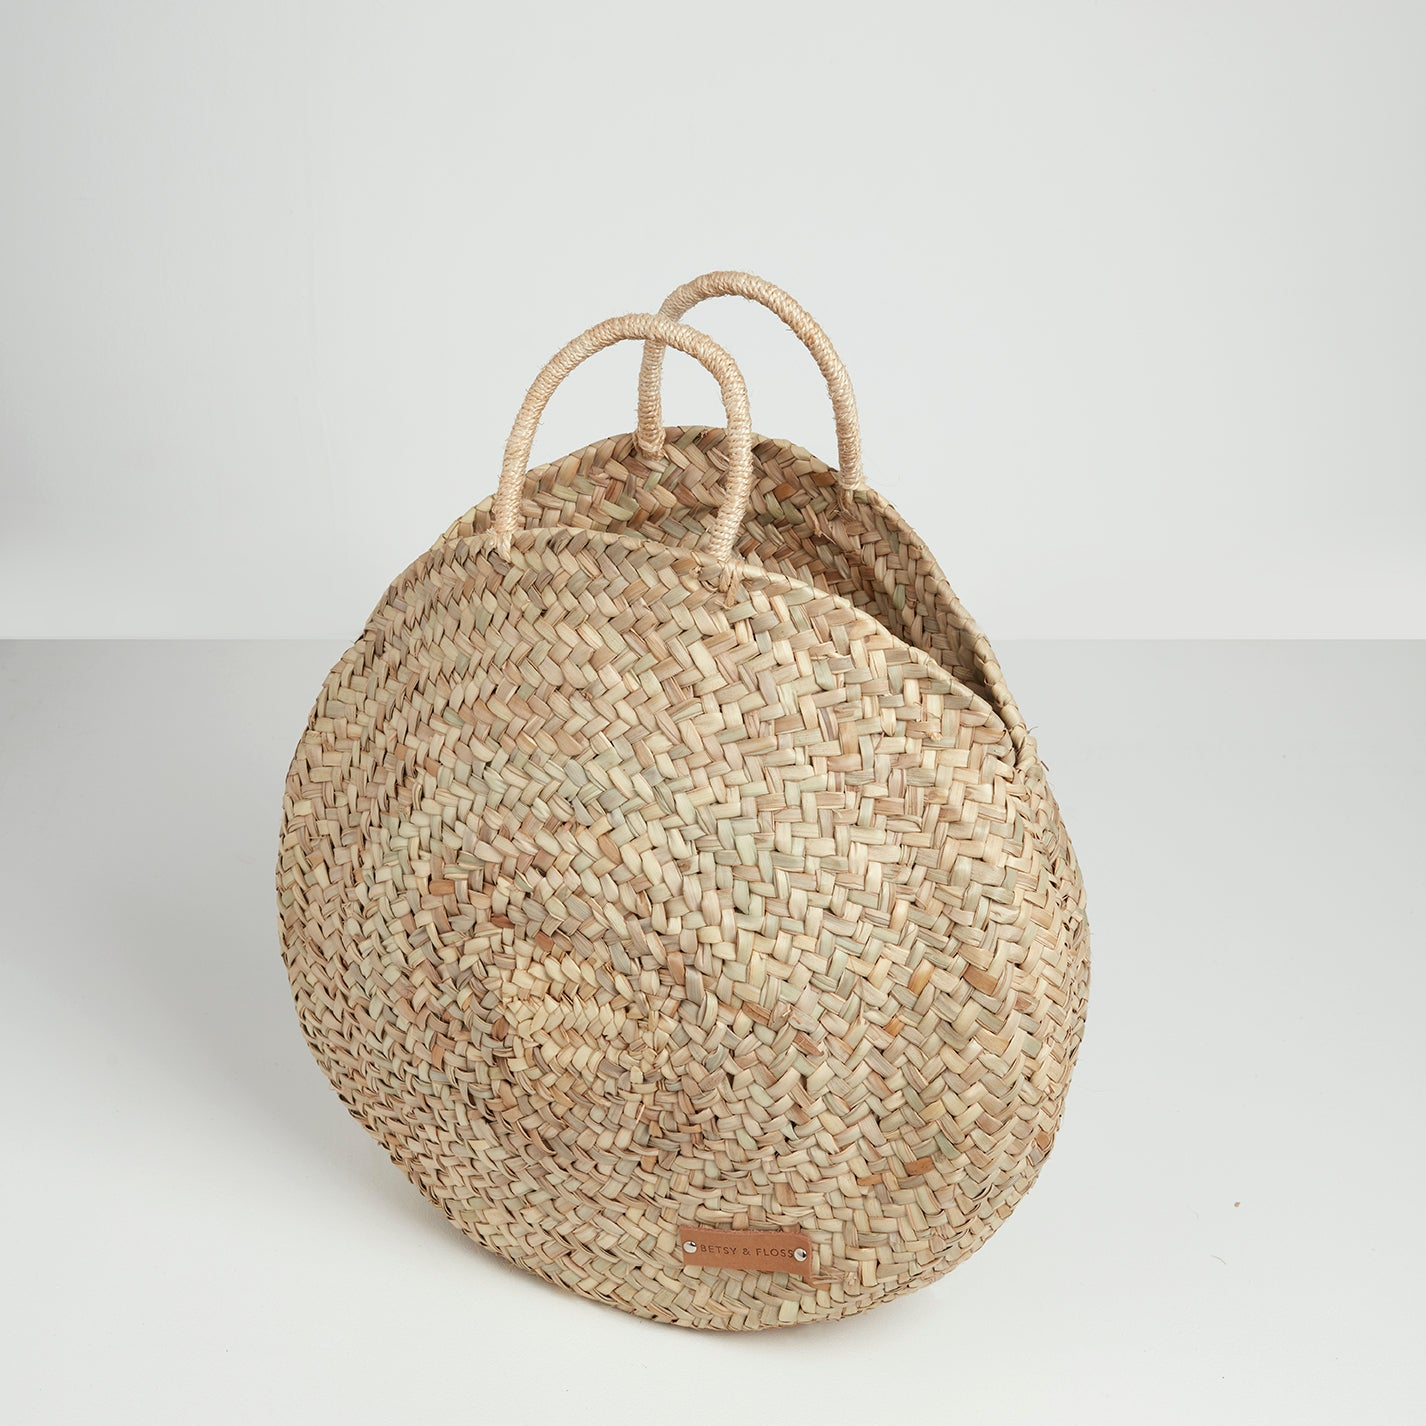 Vernazza Basket Bag